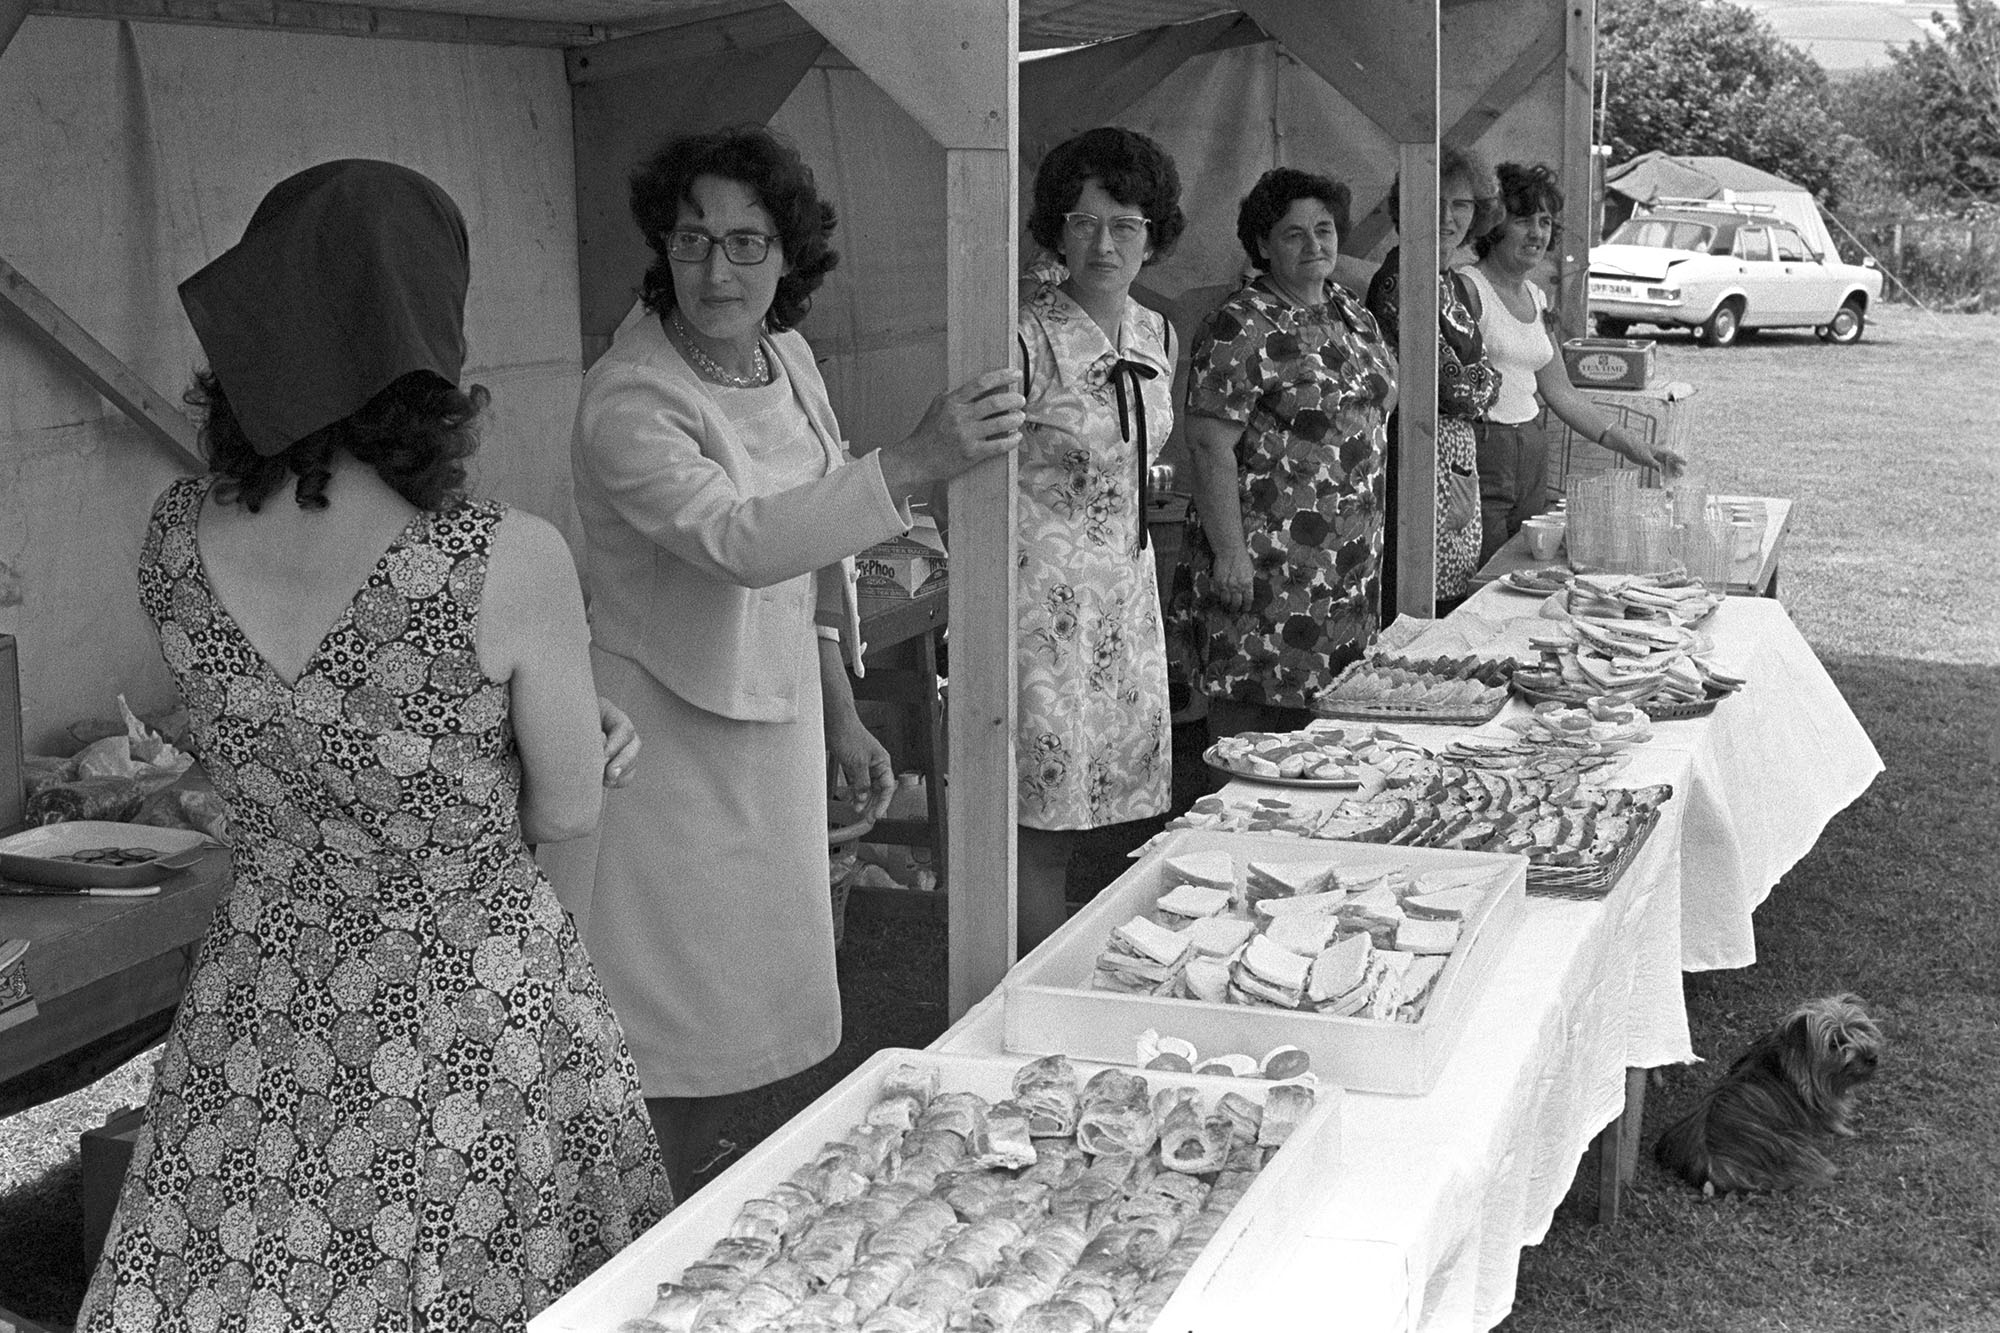 Women at cake stall at fete. <br /> [Six women at a food and refreshments stall, including sausage rolls and sandwiches, at the village fete in Atherington, with a small dog by the table.]